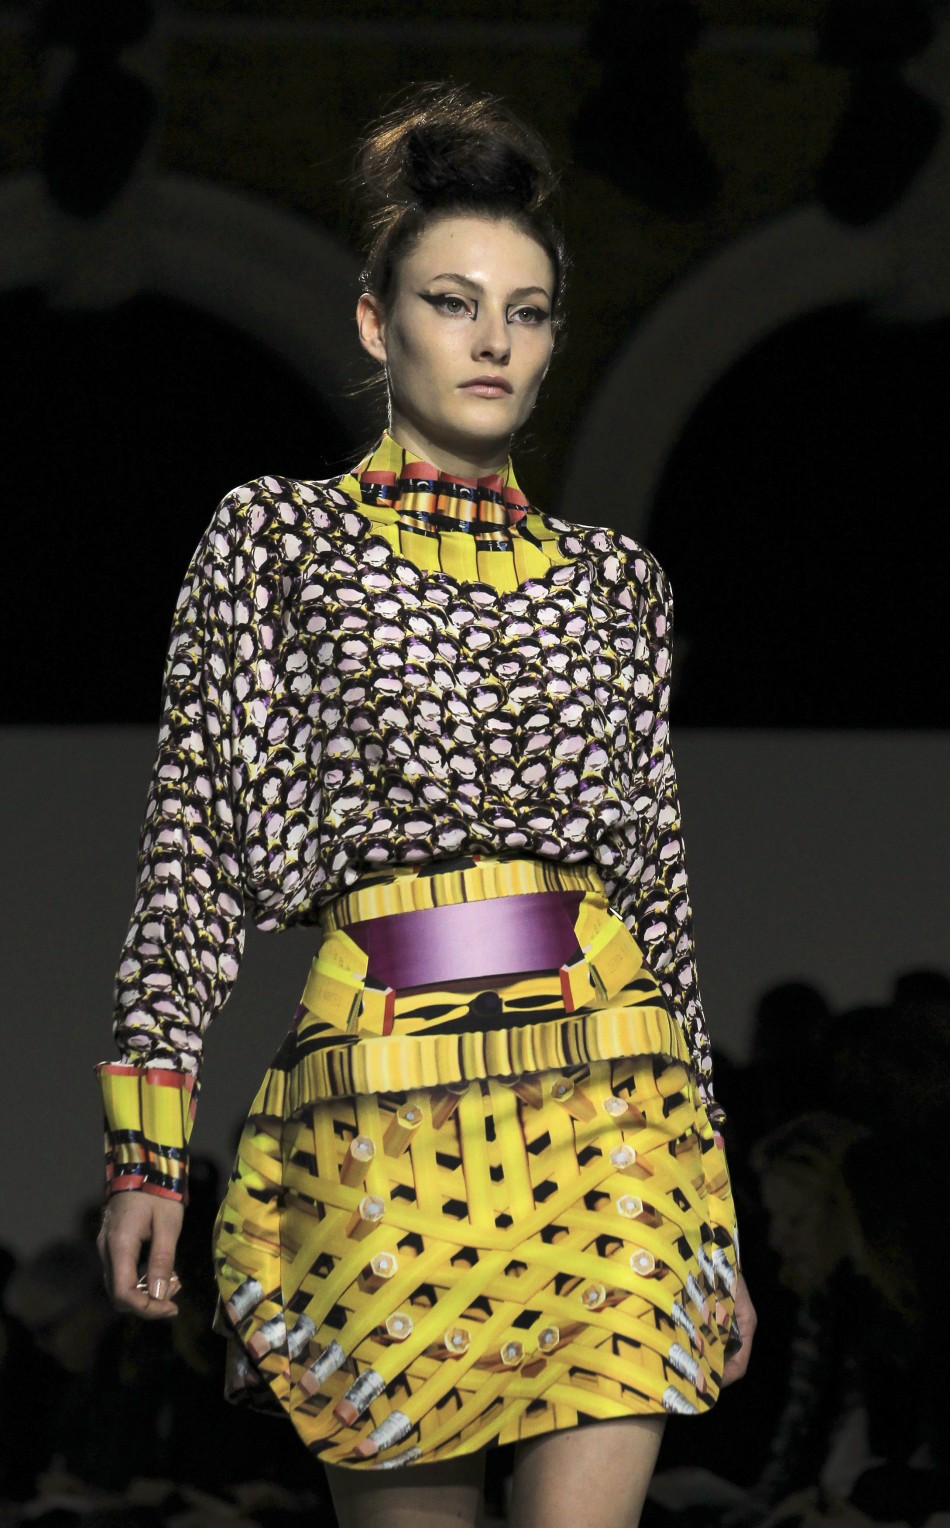 Eclectic Designs and Experimental Patterns Mark Mary Katrantzou LFW Collection